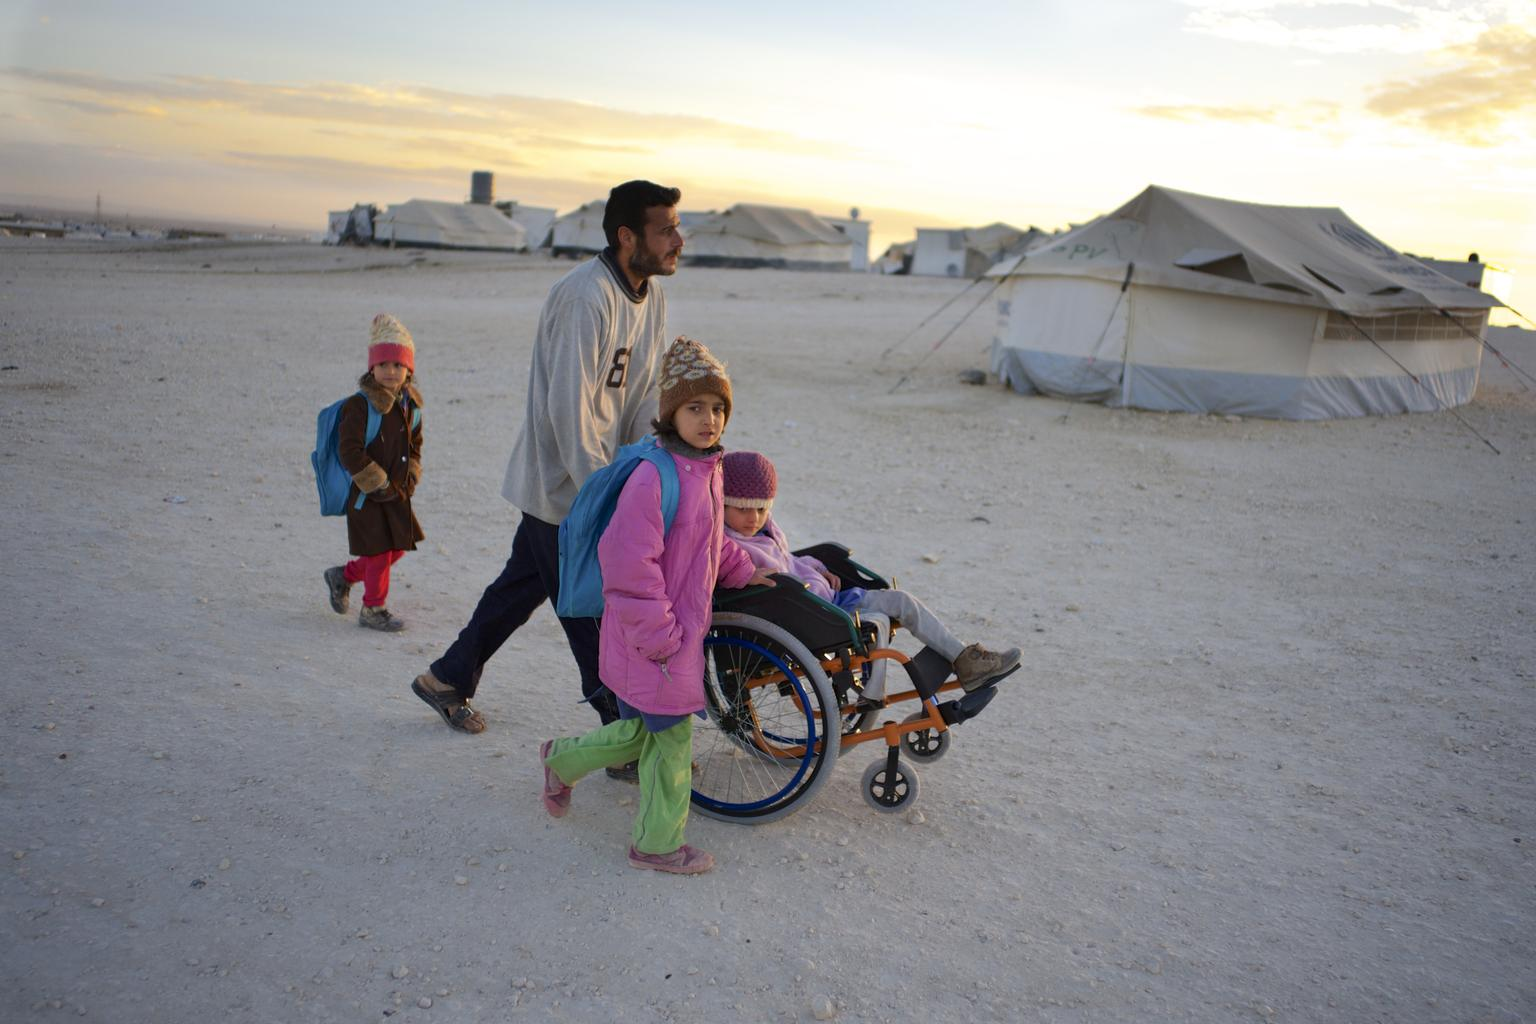 On 26 November 2013 in Jordan, a man pushes his daughter  in a wheelchair, in a refugee camp near the Syrian border